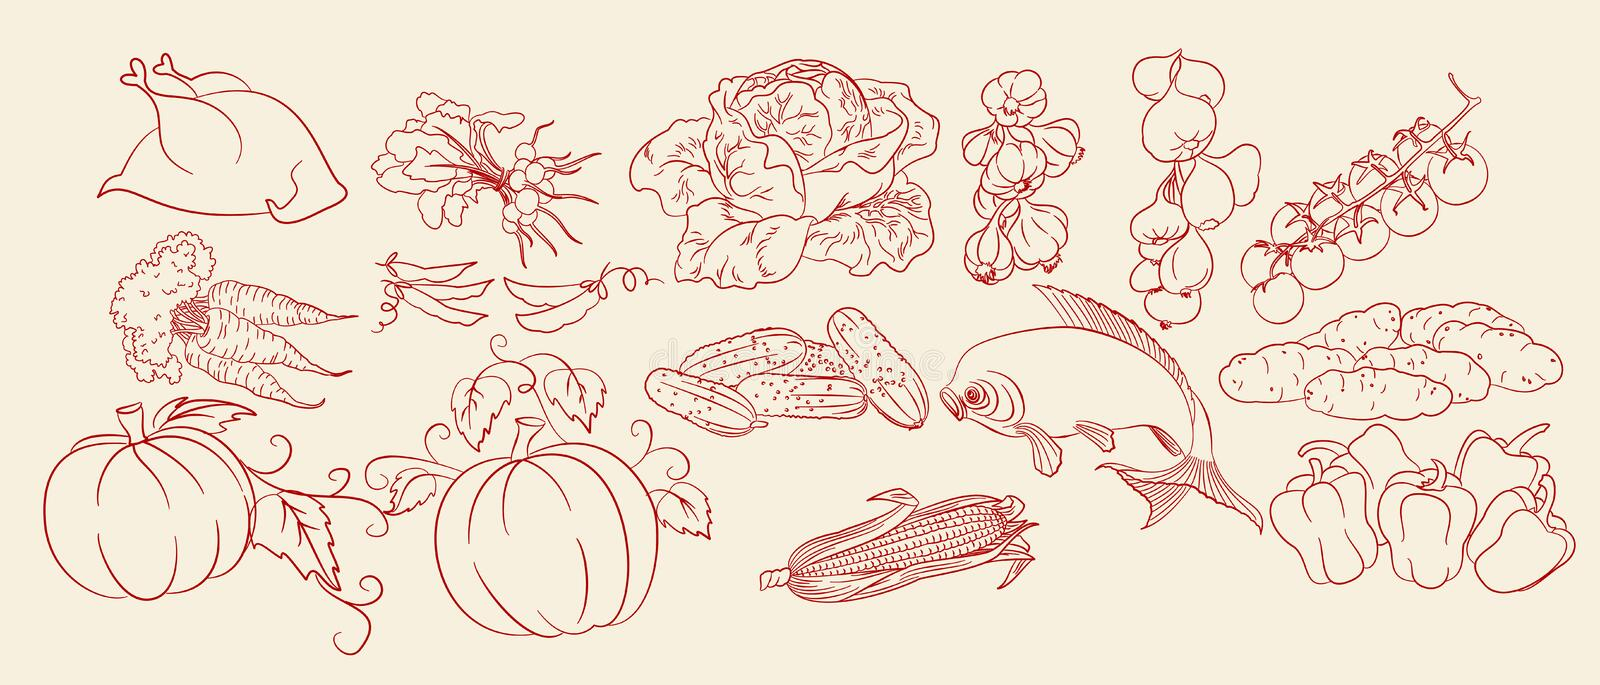 Sketch Of Vegetables, Chicken & Fish Stock Image